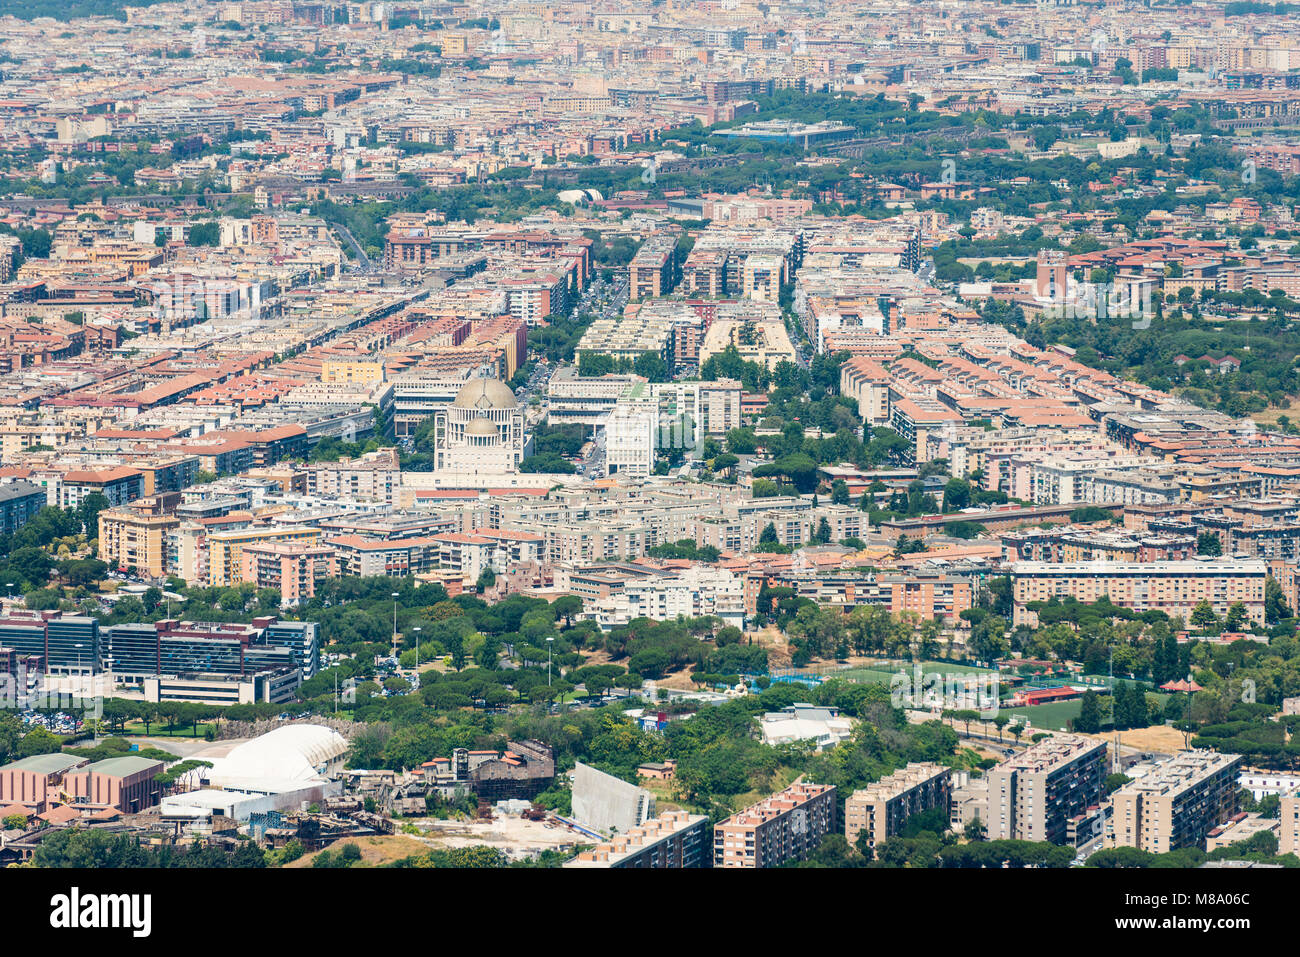 Aerial overview image of the centre of Rome city, Italy - Stock Image